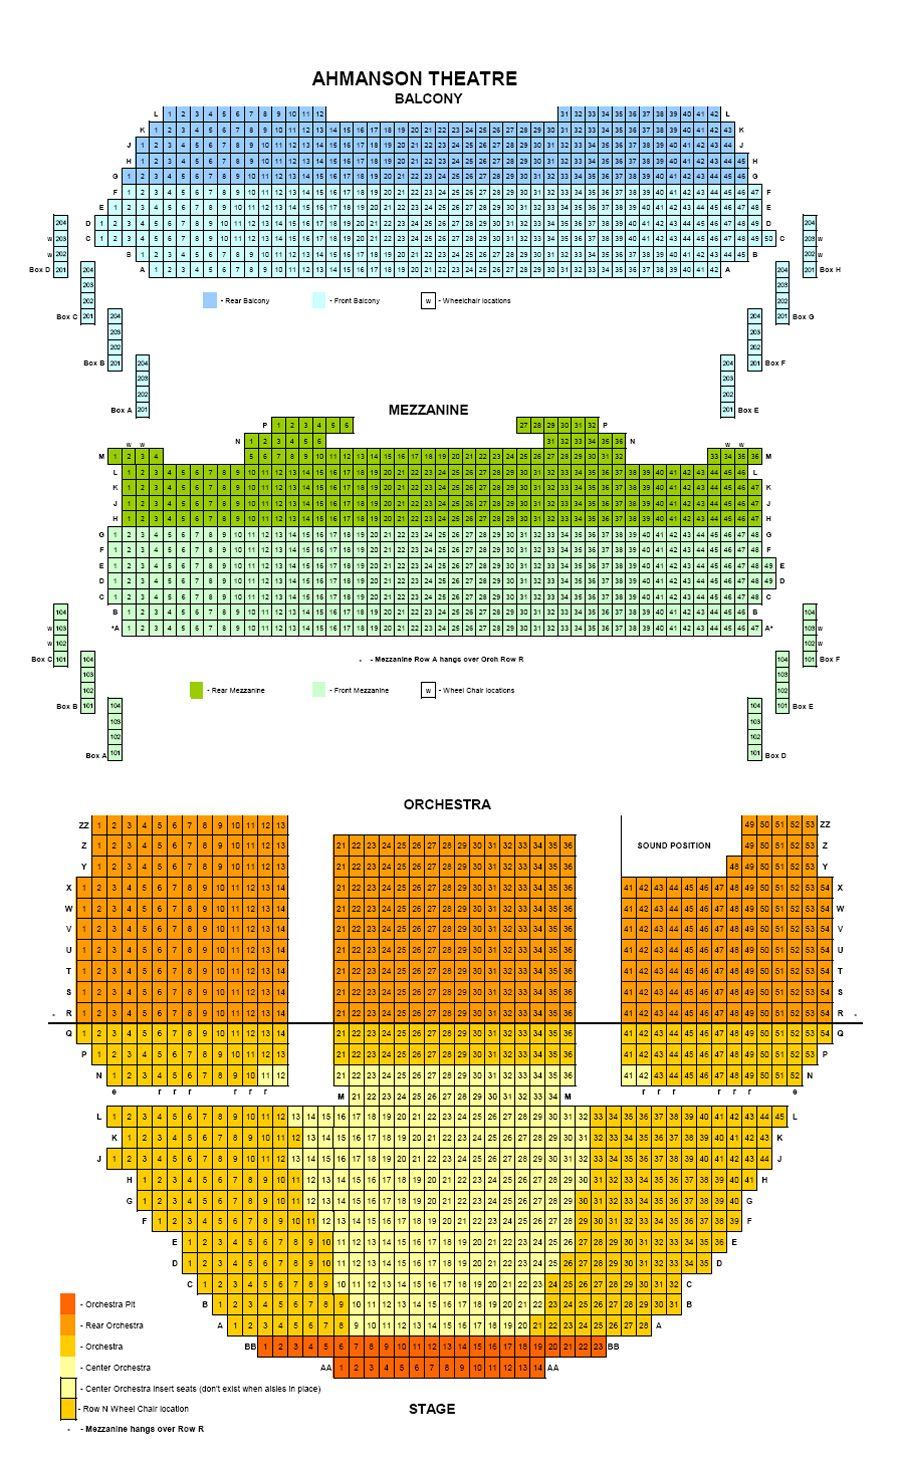 Ahmanson Theatre Seating Chart Seating Charts Seating Chart Template Auditorium Seating